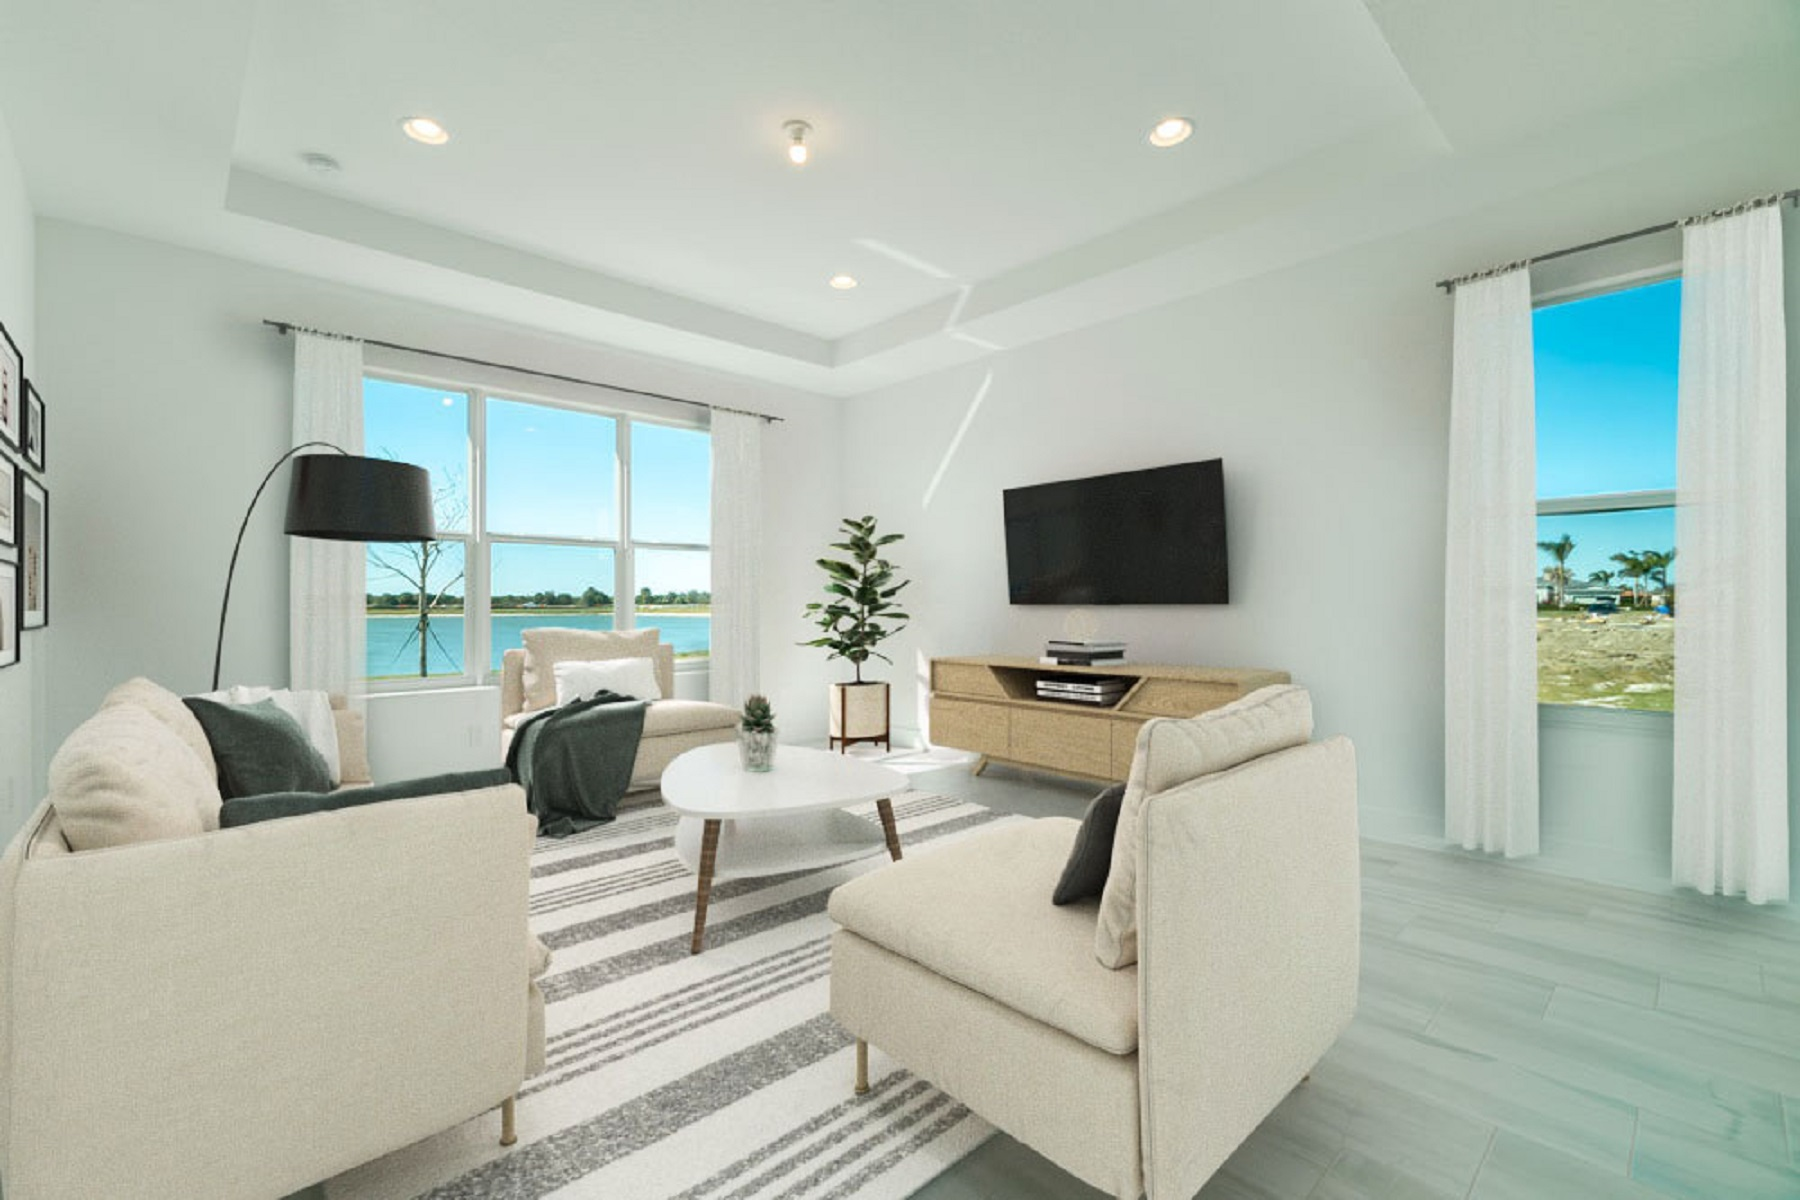 Bellflower Plan Greatroom at Tradition - Manderlie in Port St. Lucie Florida by Mattamy Homes